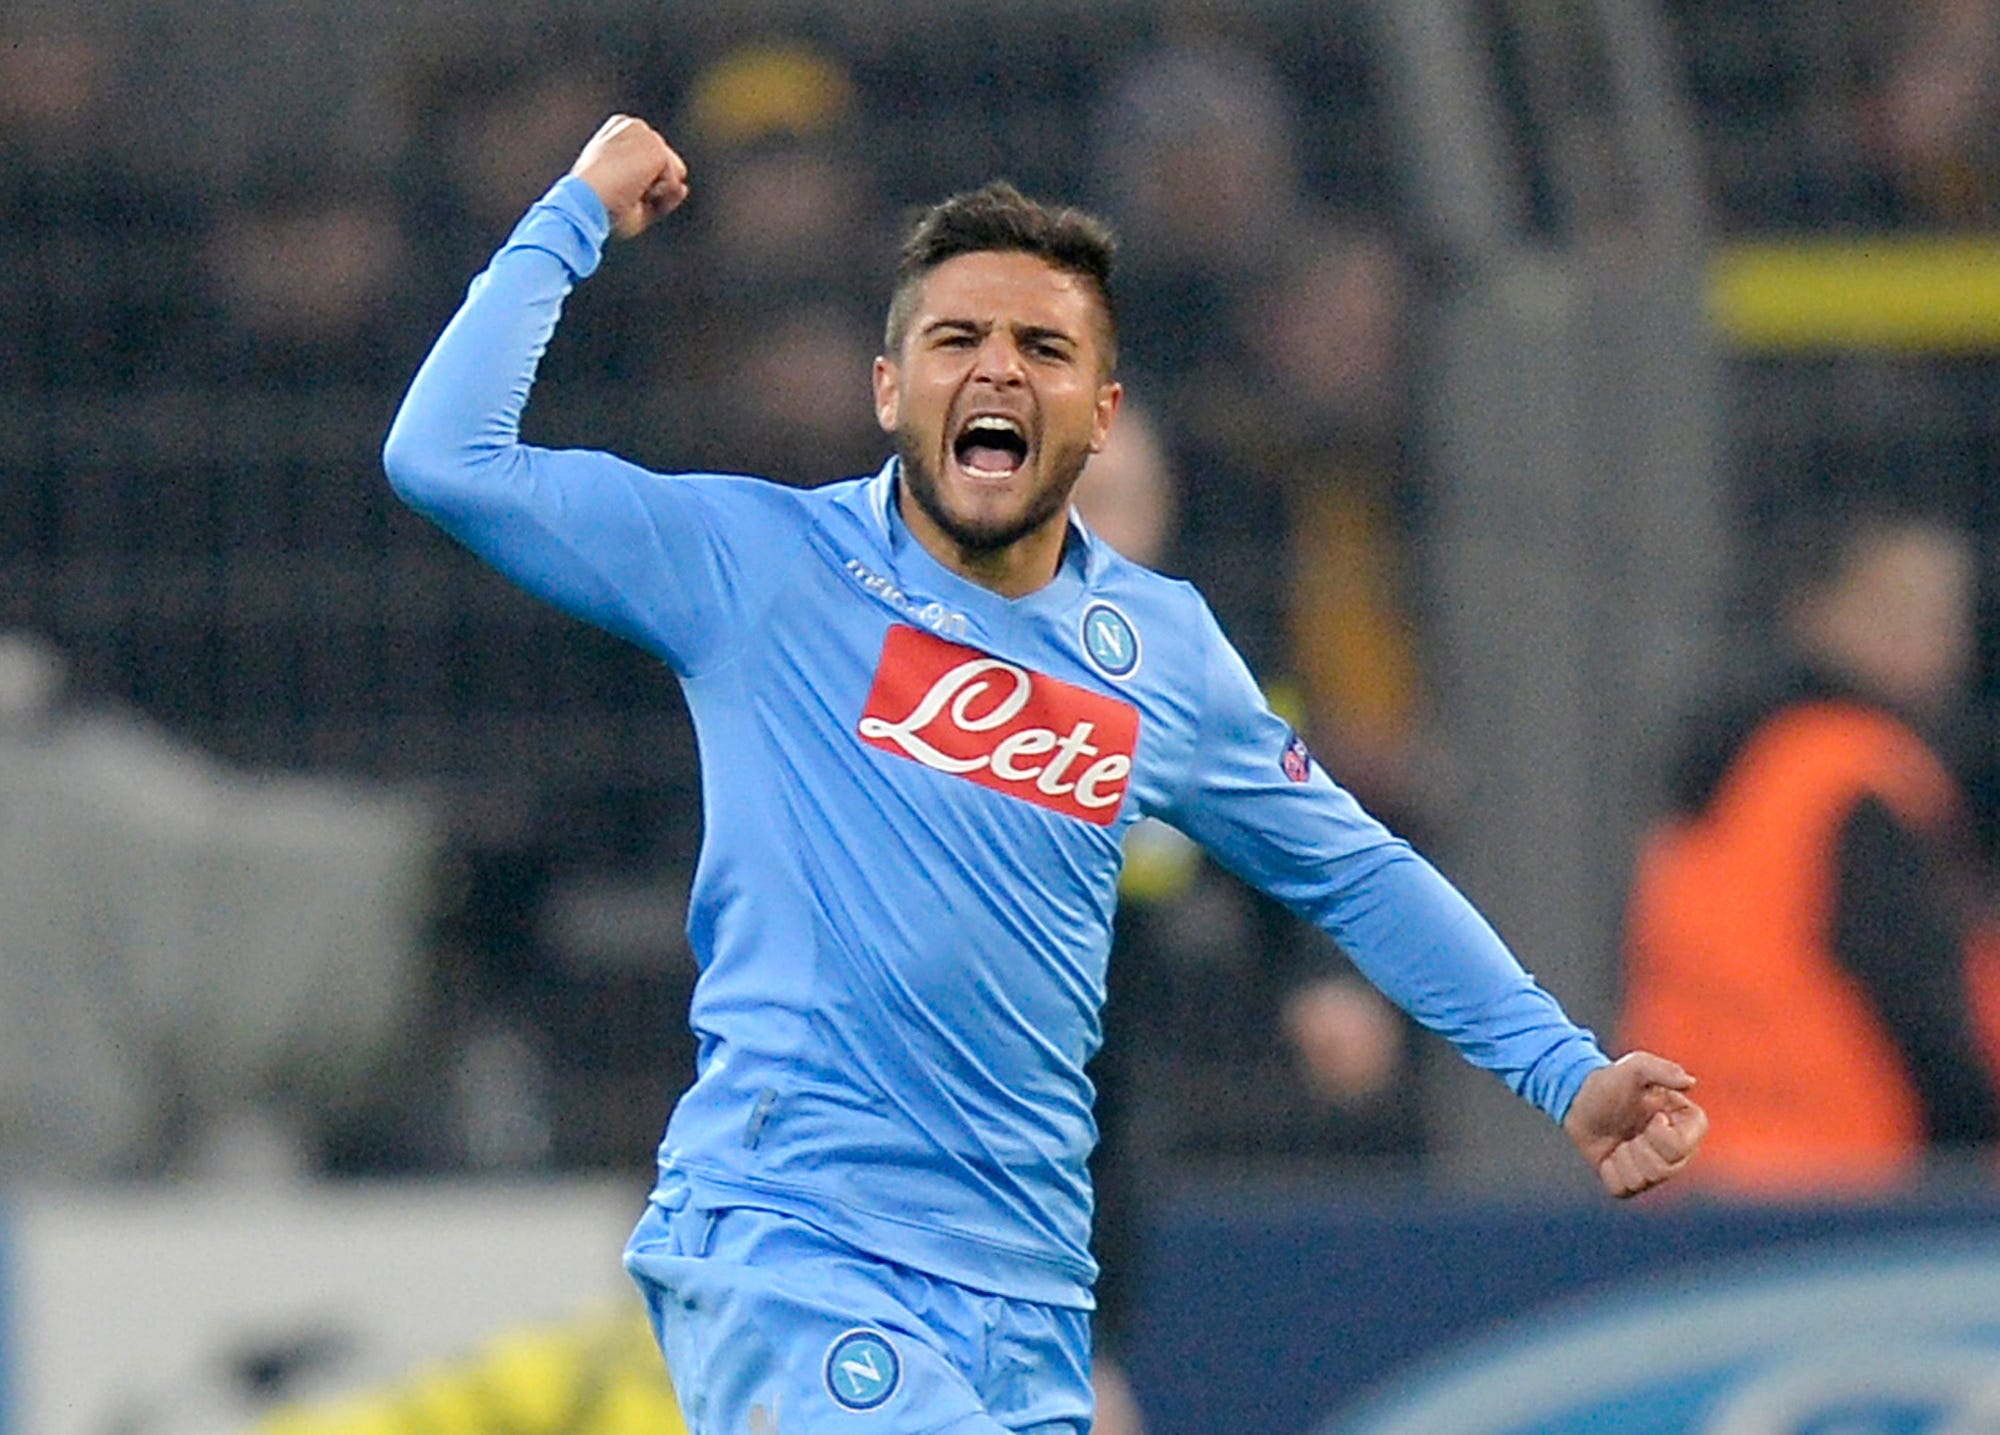 Napoli forward Lorenzo Insigne extends contract until 2022